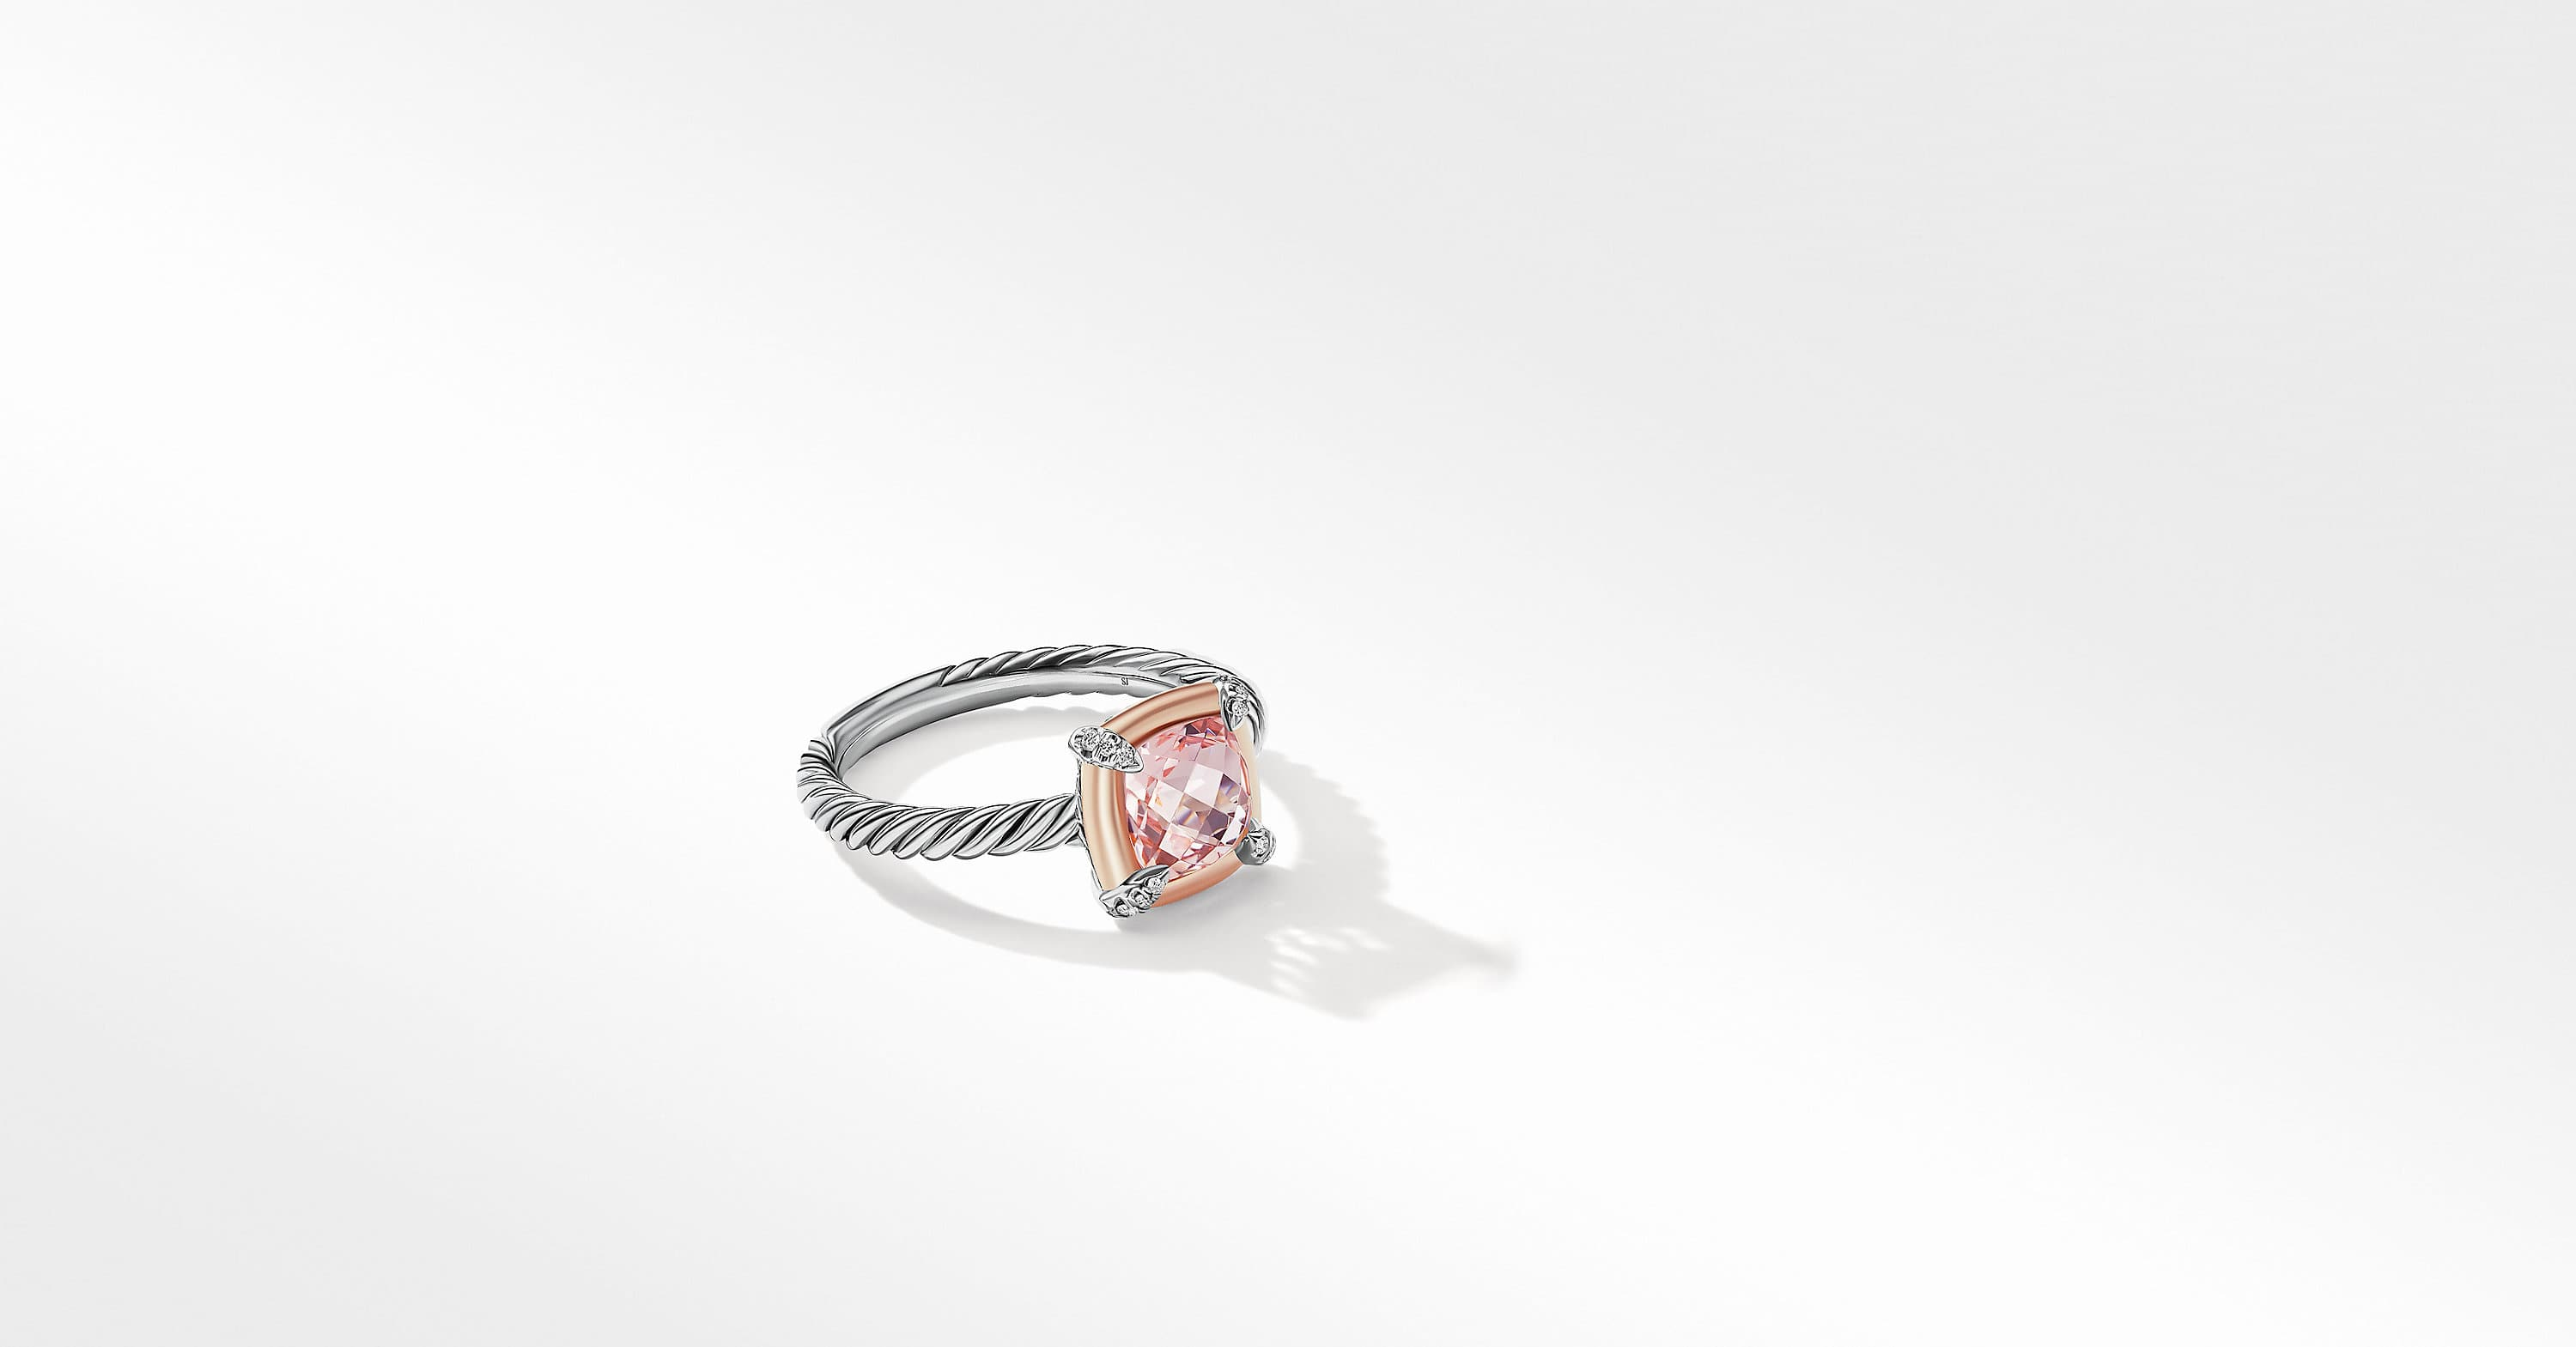 Petite Chatelaine Ring with 18K Rose Gold Bezel and Diamonds, 10mm